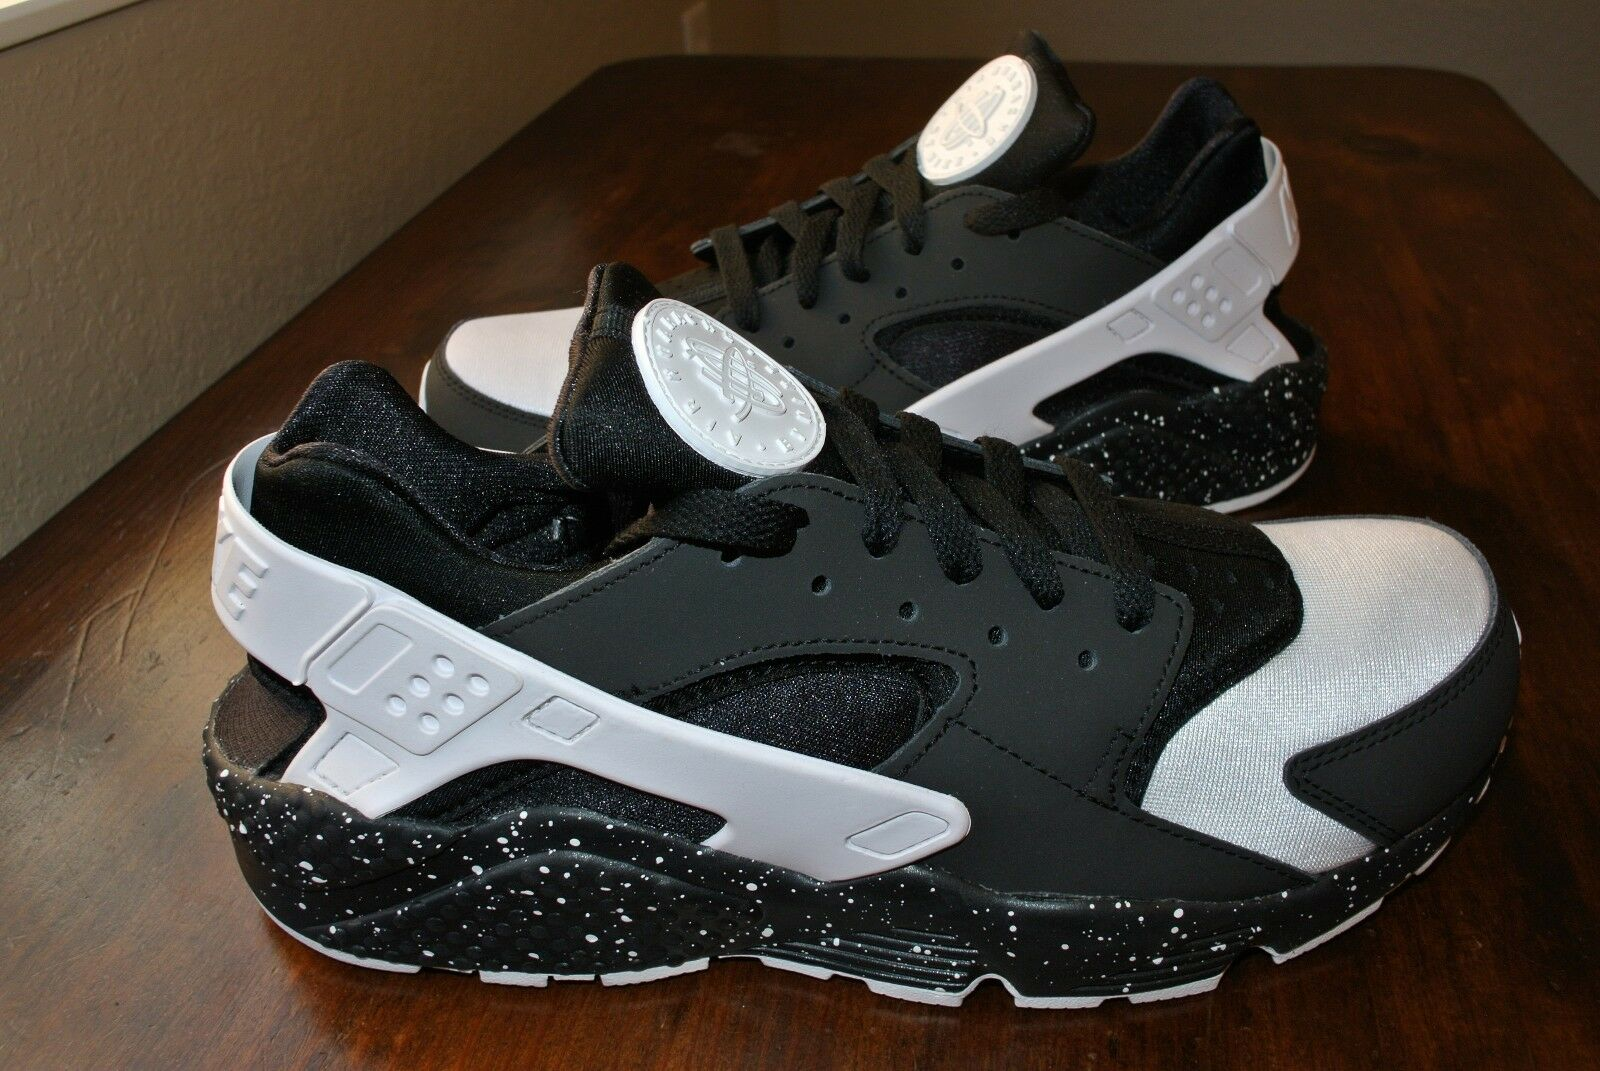 NIKE NikeiD AIR HUARACHE PANDA BLACK WHITE OREO 777330 972 US MENS SHOE SIZE 9